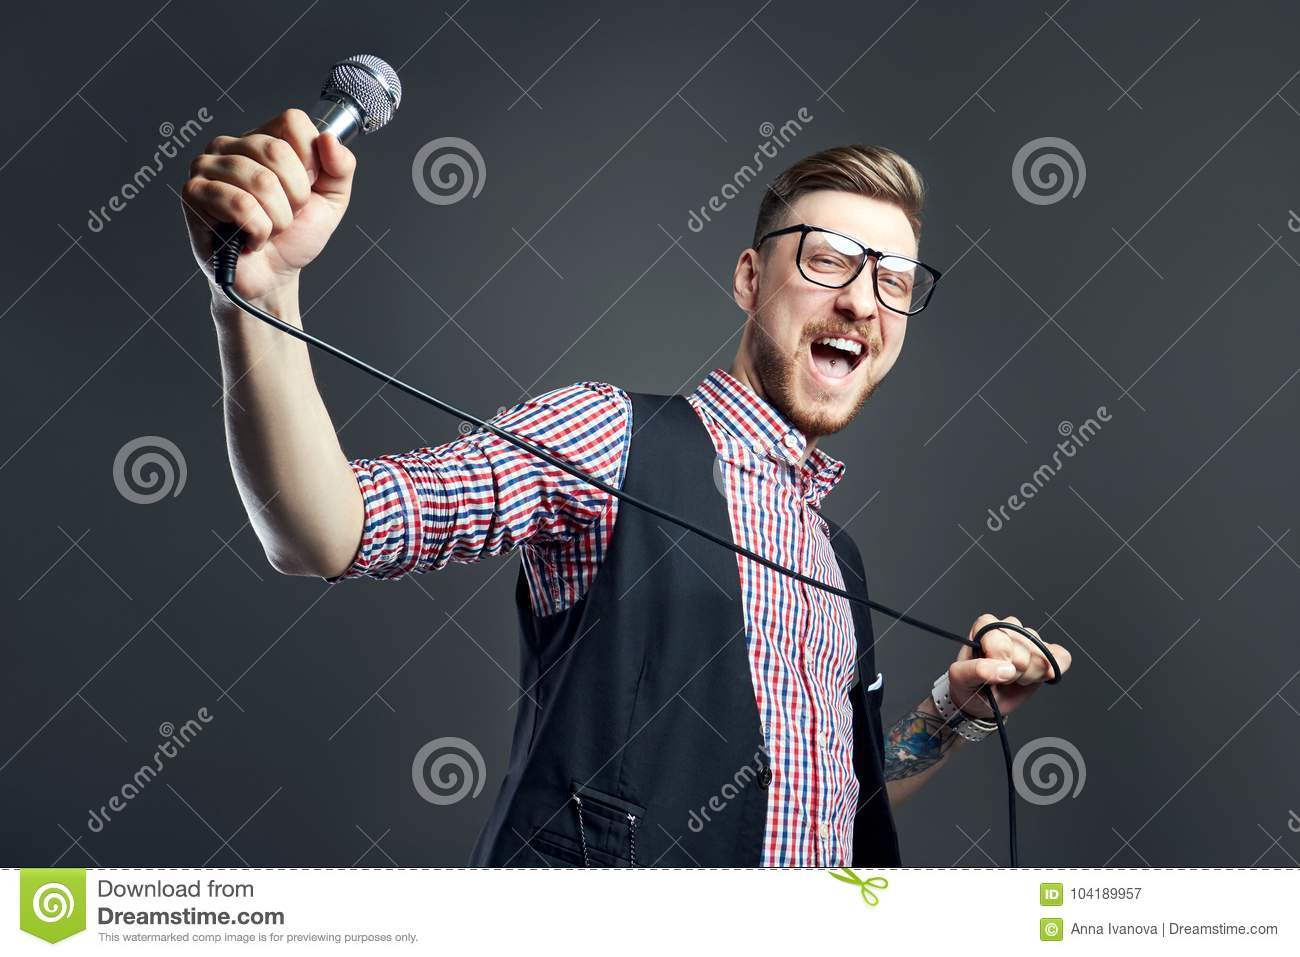 Karaoke man sings the song to microphone, singer with beard on grey background. Funny man in glasses holding a microphone